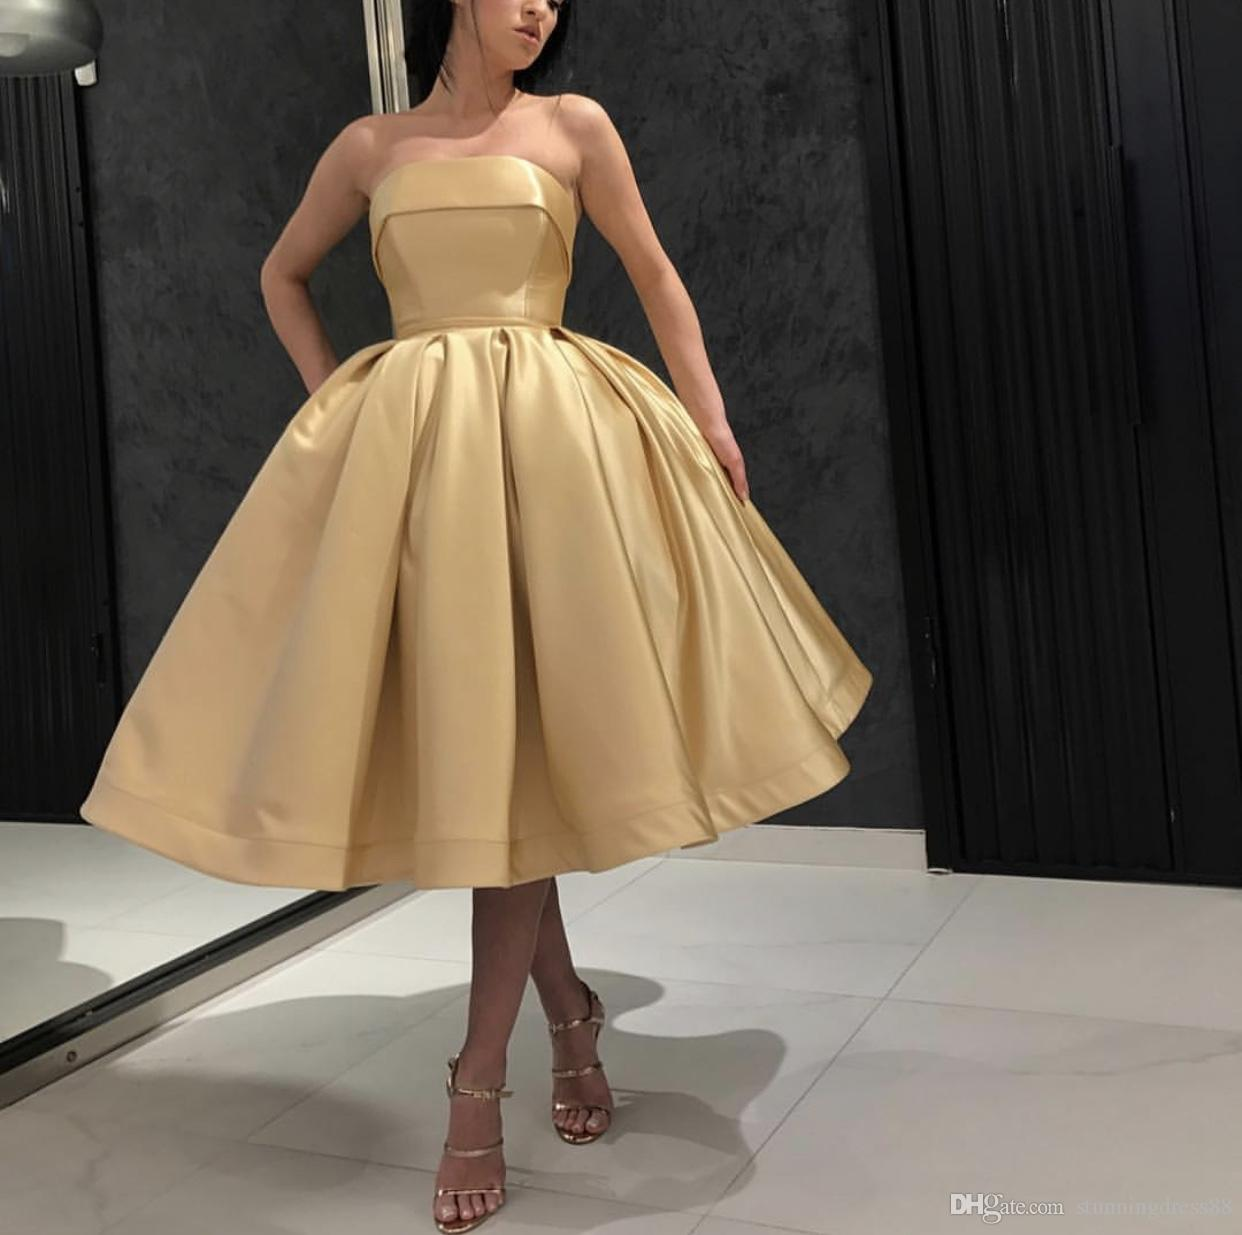 Charming Gold Ball Gown Short Bridesmaid Dresses Strapless Satin Ruched Backless Tea Length Wedding Party Prom Bridesmaids Dress